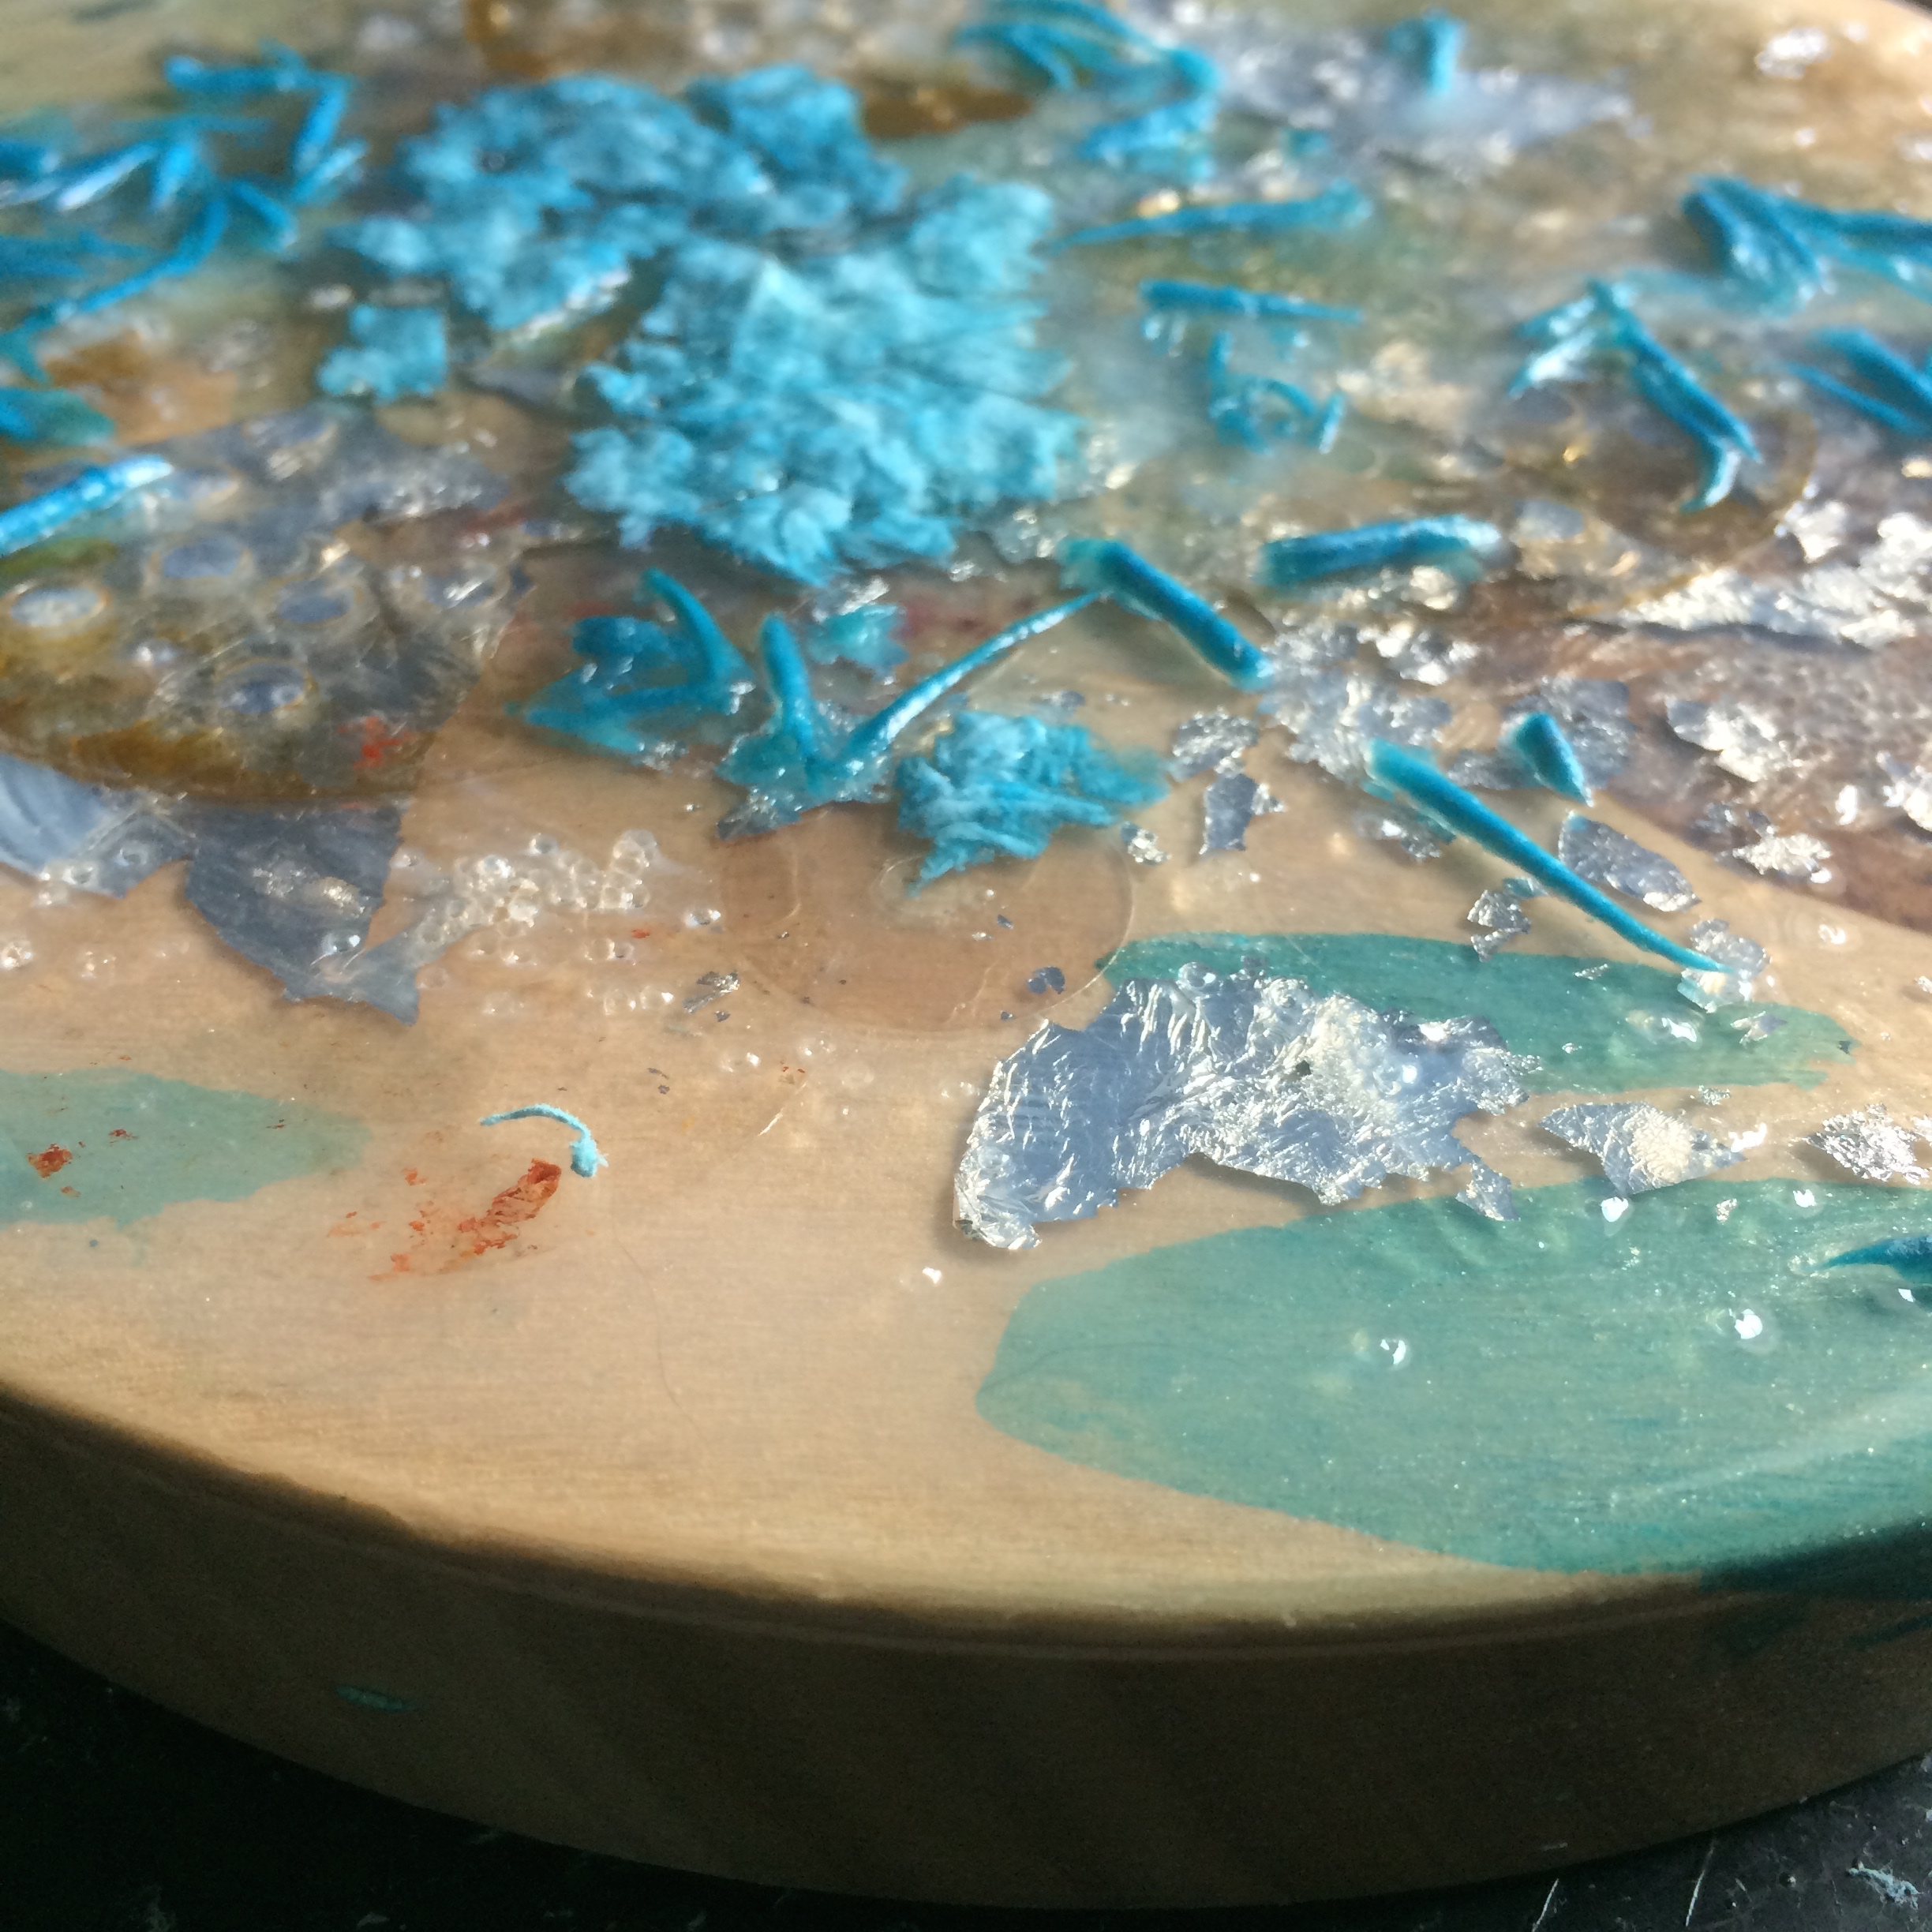 Embedding the paper waste into some pouring medium.